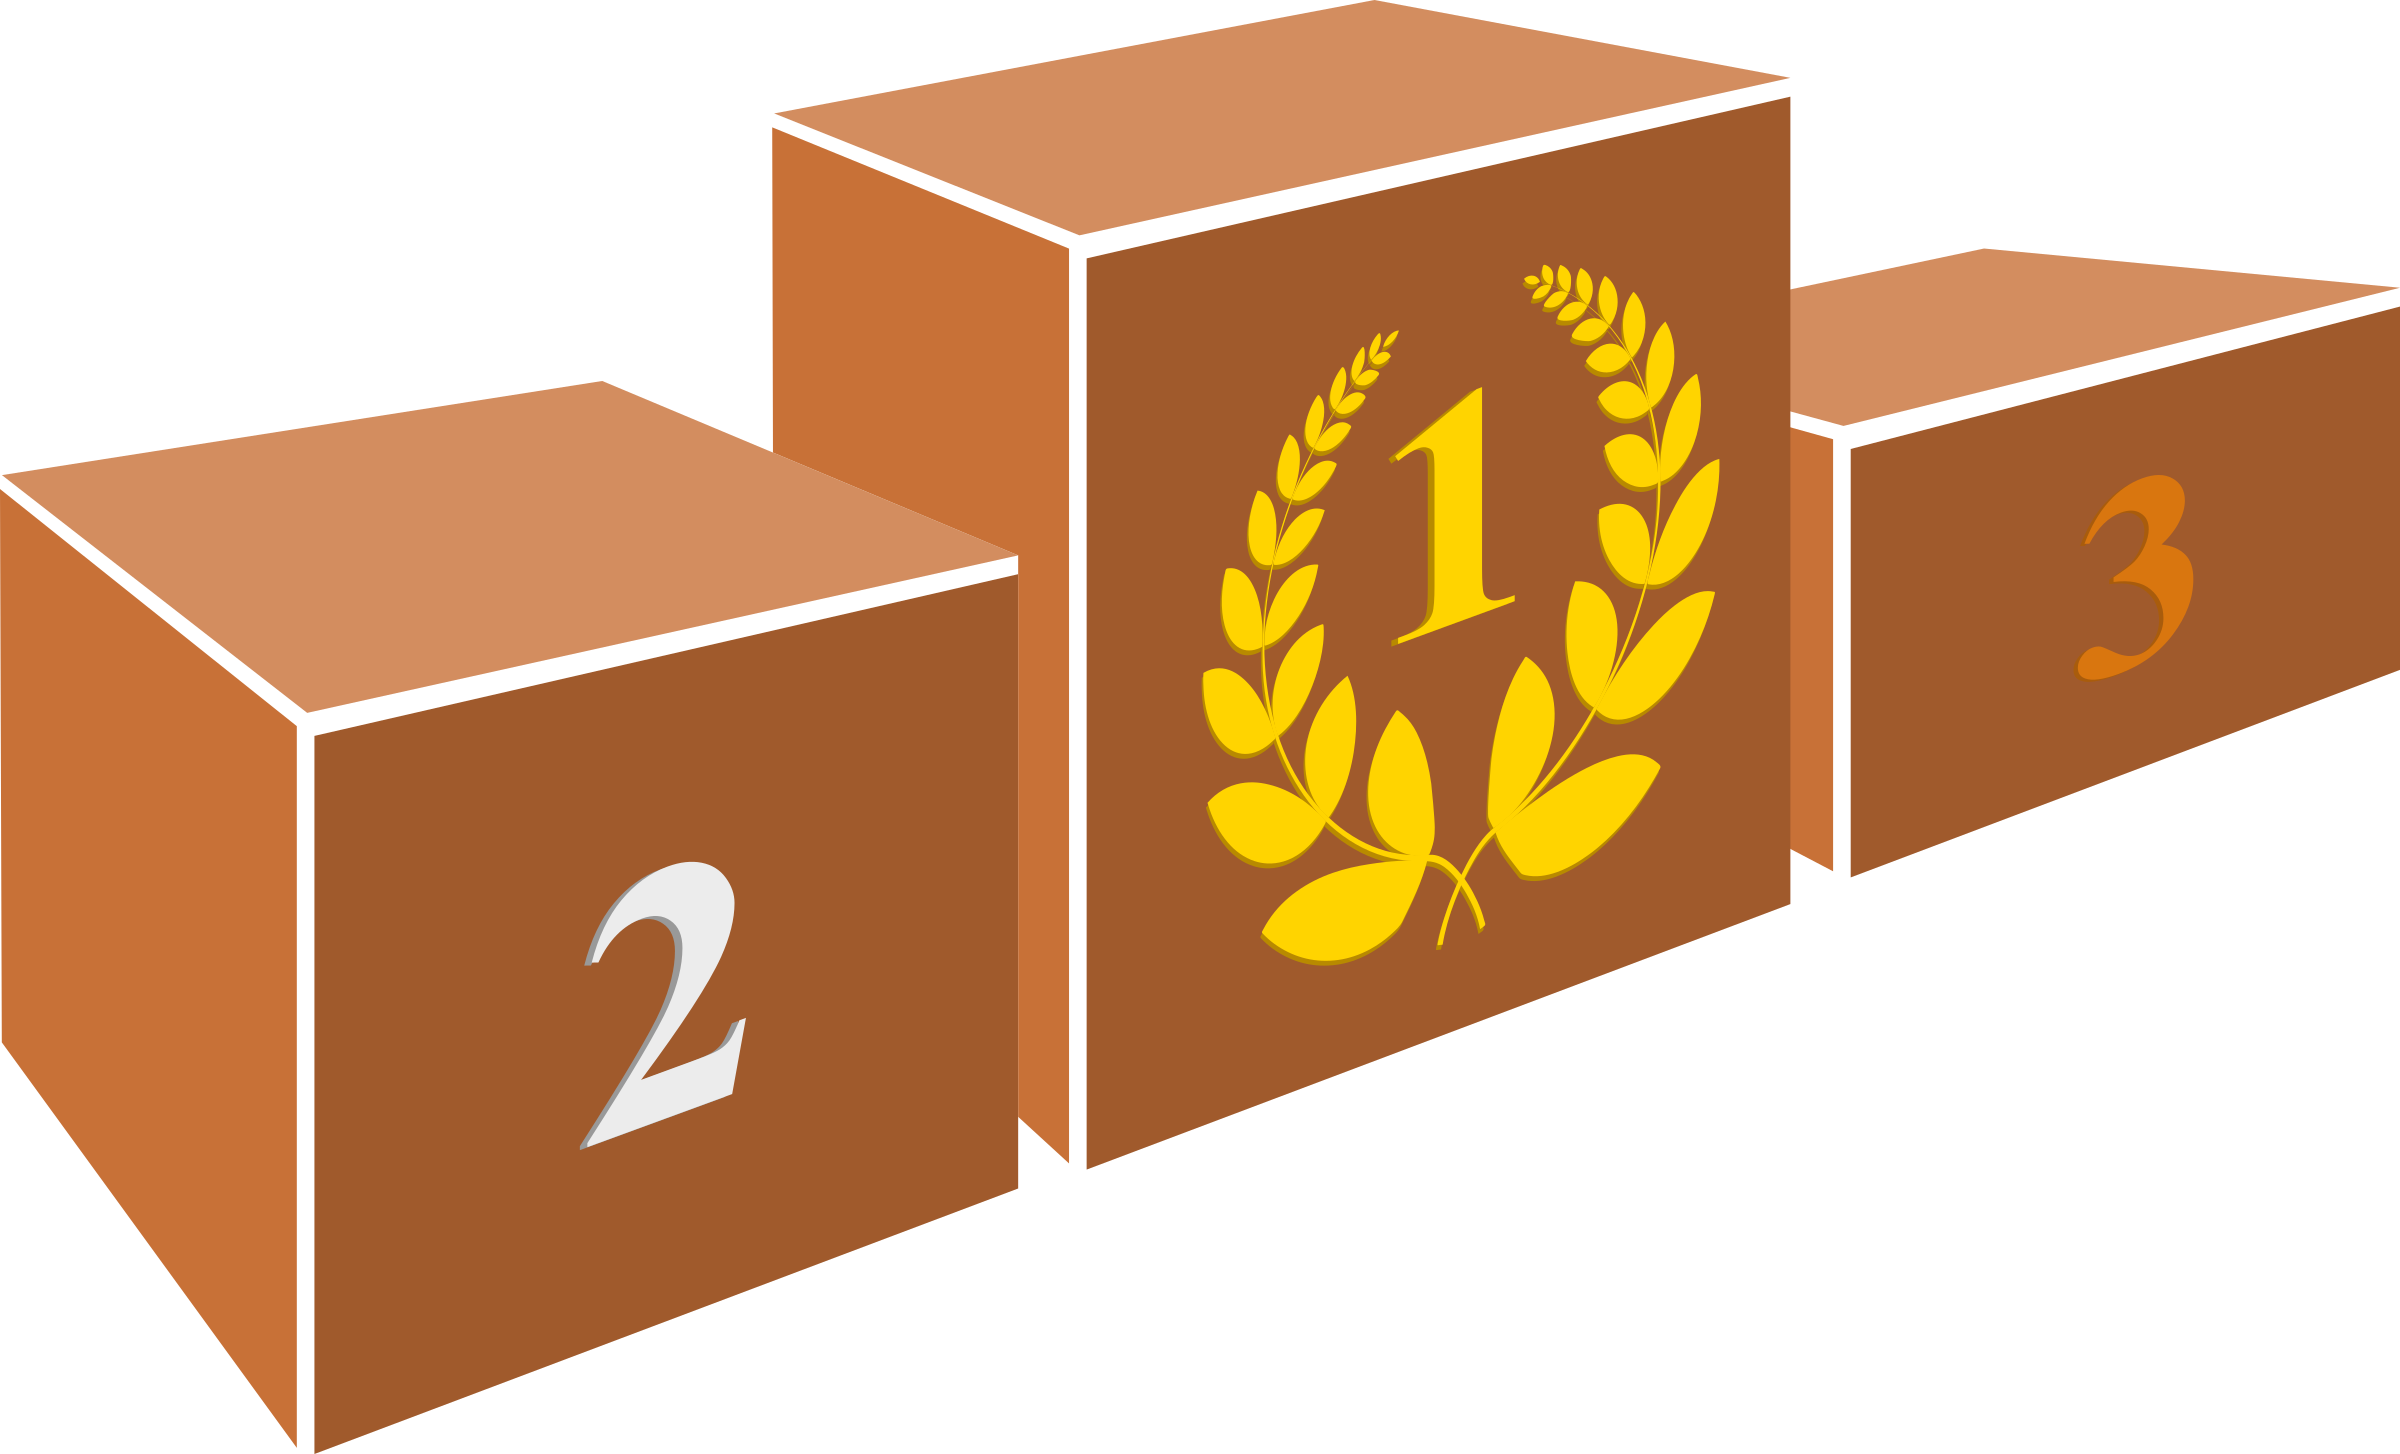 Podium clipart wooden.